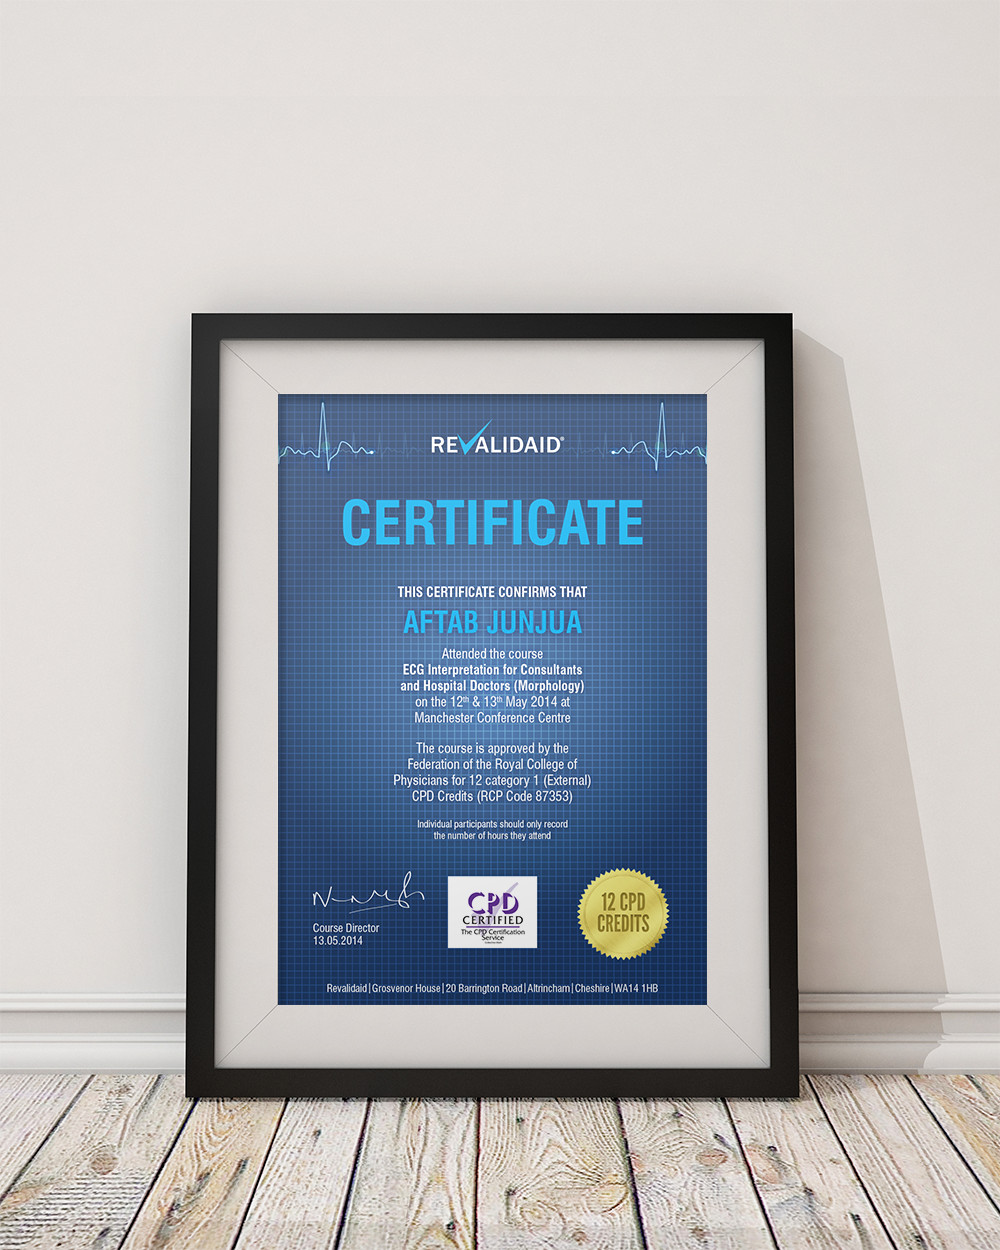 Certificate-design-Glasgow-Edinburgh-West-Lothian-03.jpg